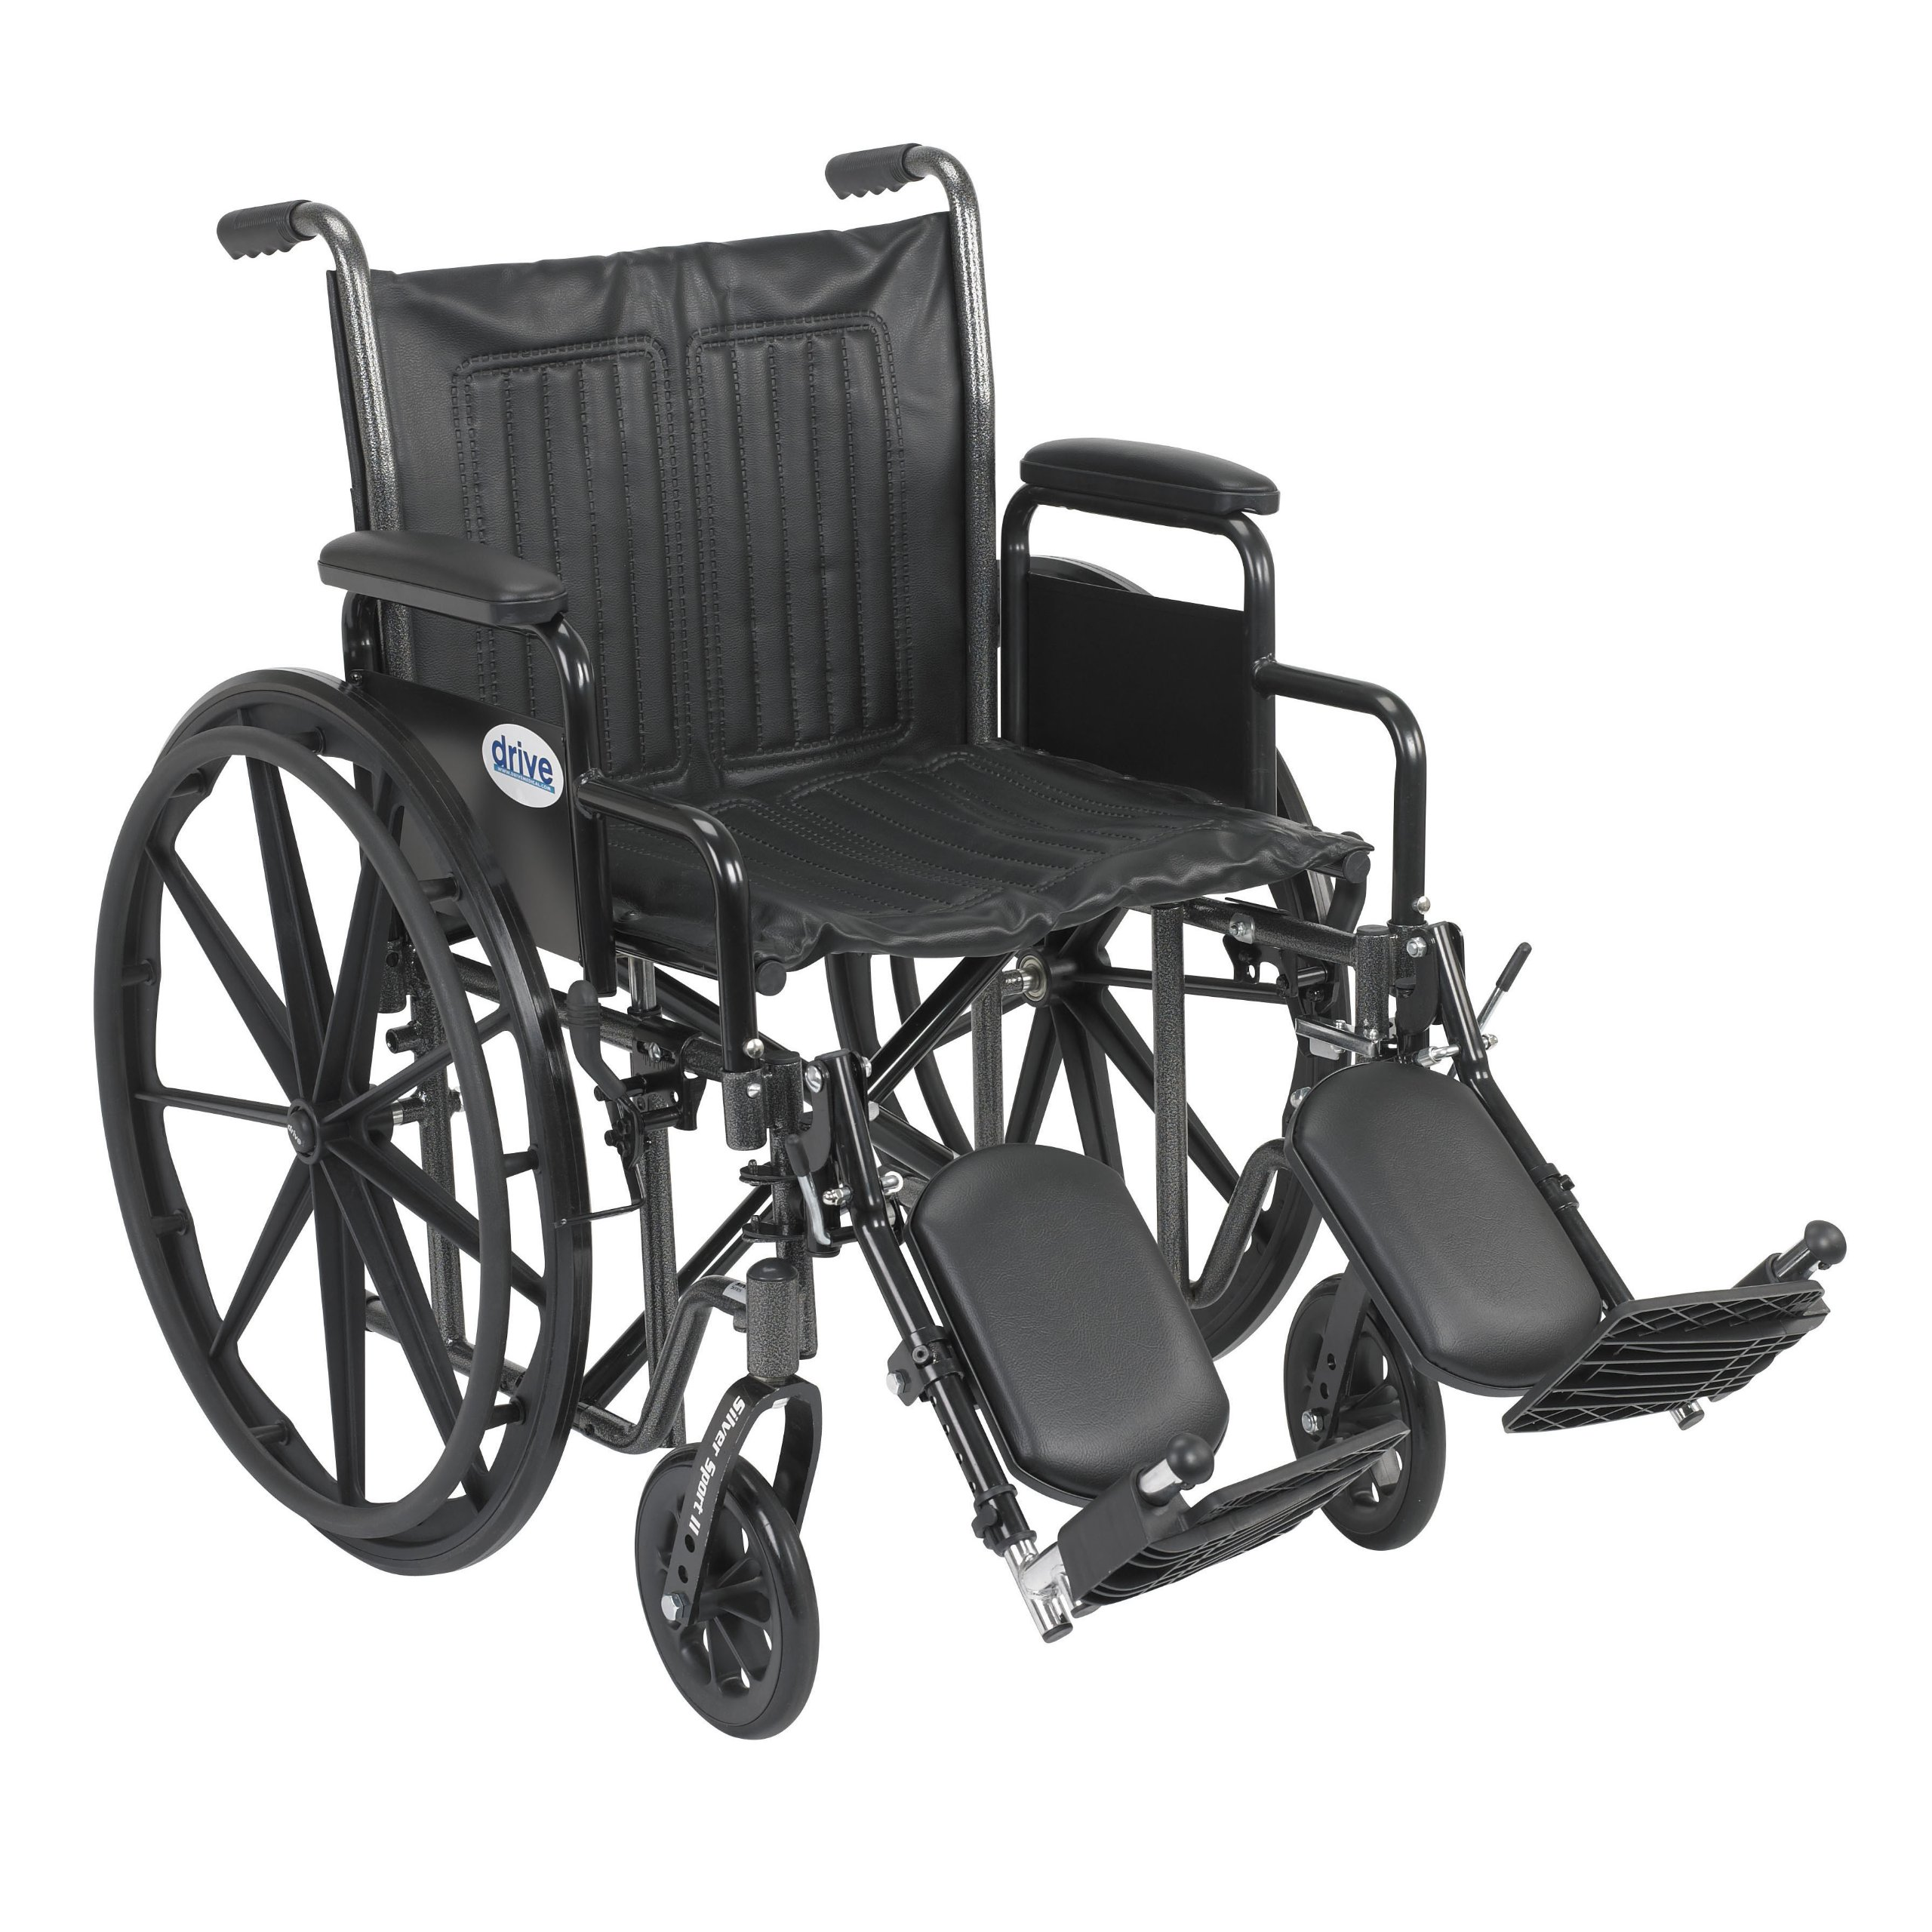 Drive Medical Silver Sport 2 Wheelchair with Various Arms Styles and Front Rigging Options, Black, 20 Inch by Drive Medical